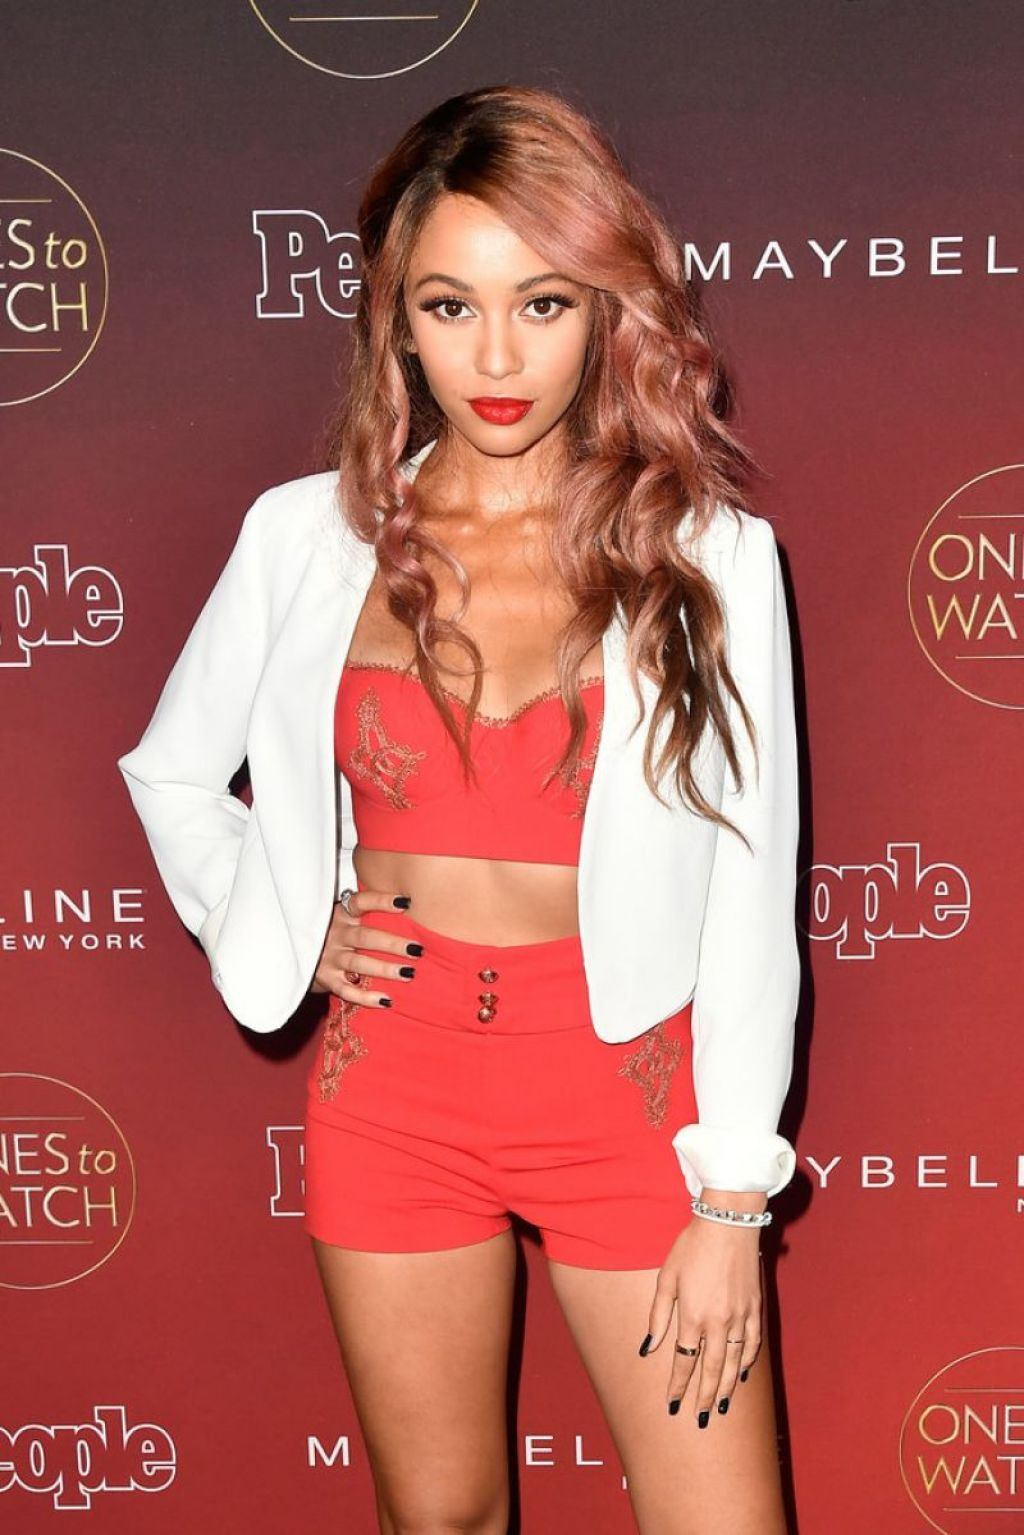 Vanessa Morgan Hot in REd Dress